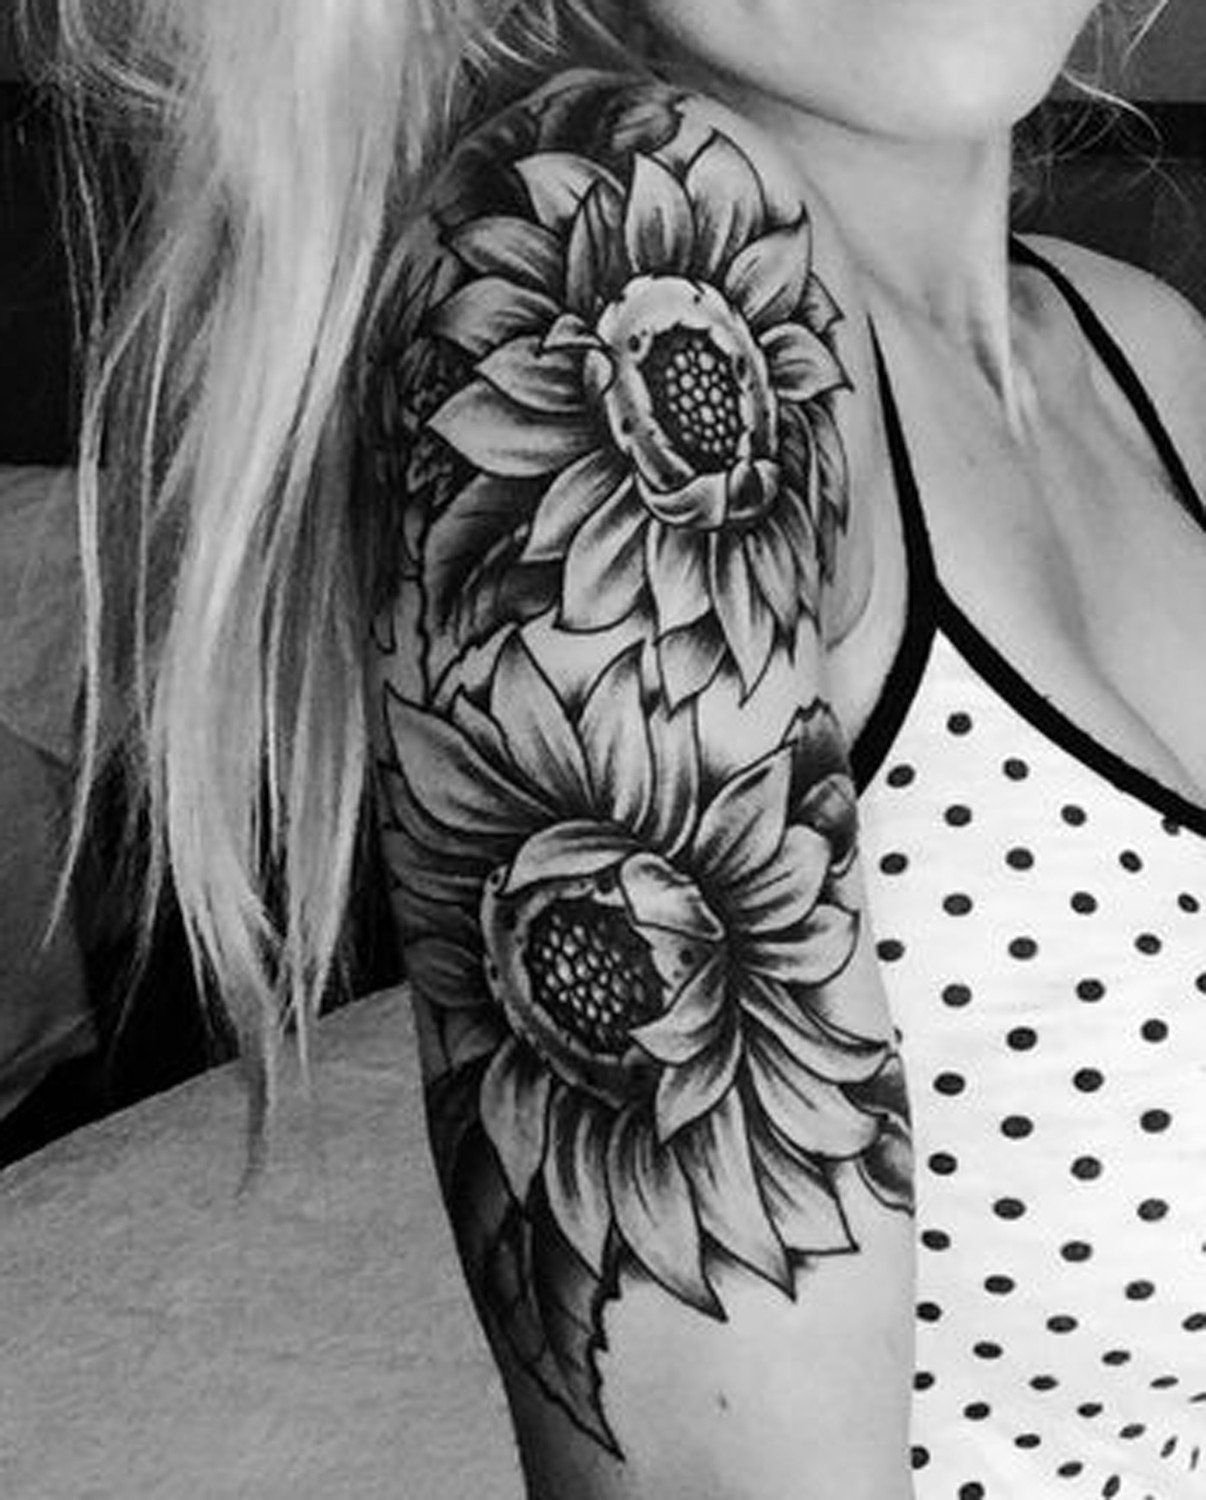 10 Fashionable Black And White Tattoo Ideas 20 of the most boujee sunflower tattoo ideas arm sleeve tattoos 2020